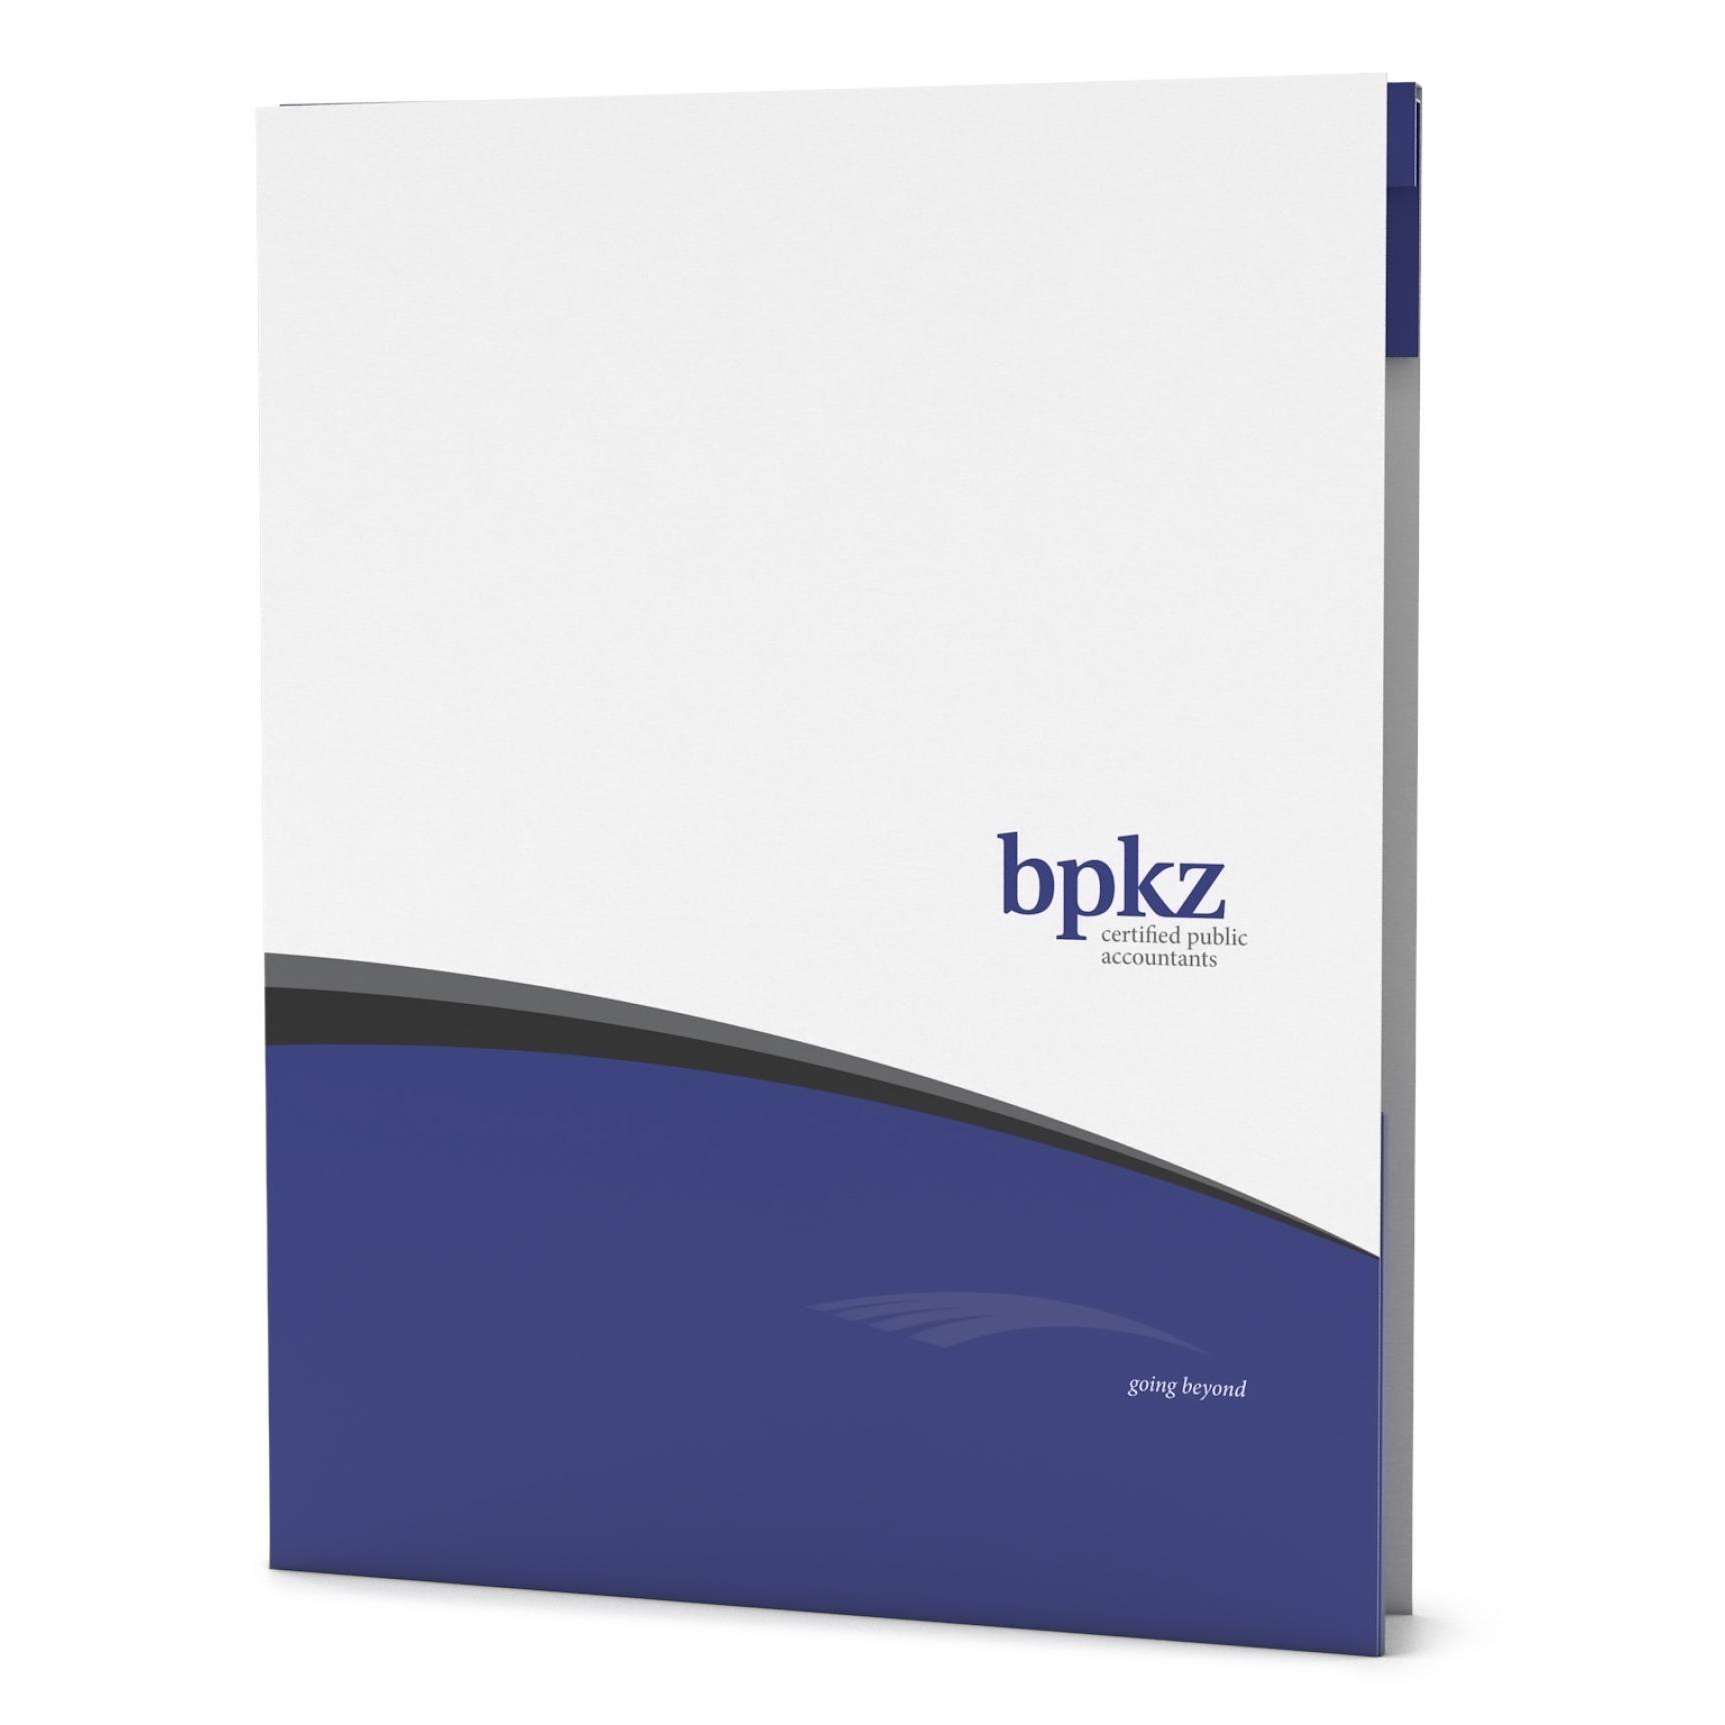 An example of marketing collateral for BPKZ CPA Firm.